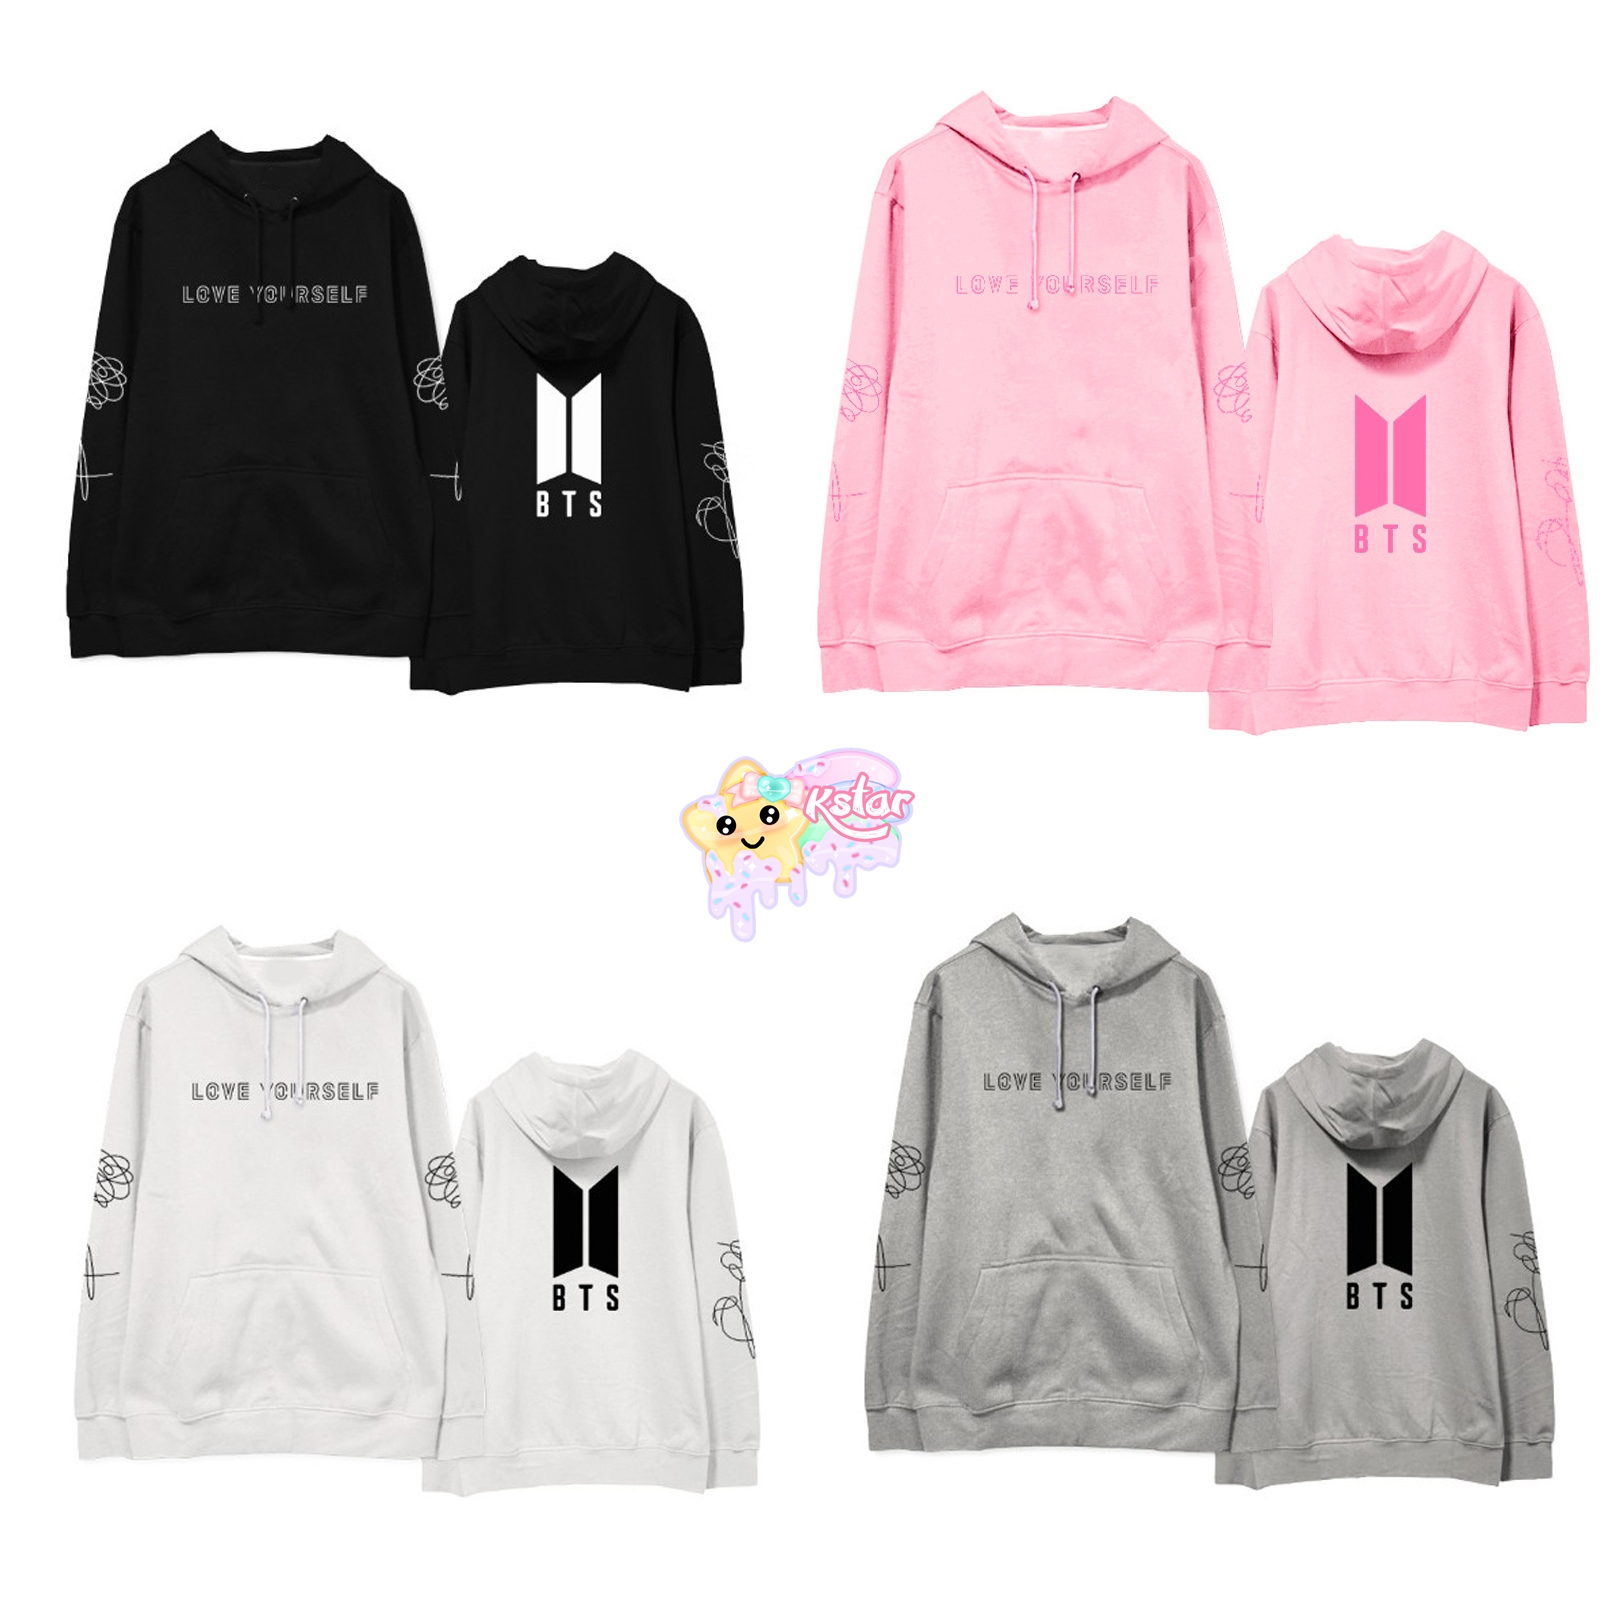 BTS Love Yourself Shirt/Hoodie from K-STAR